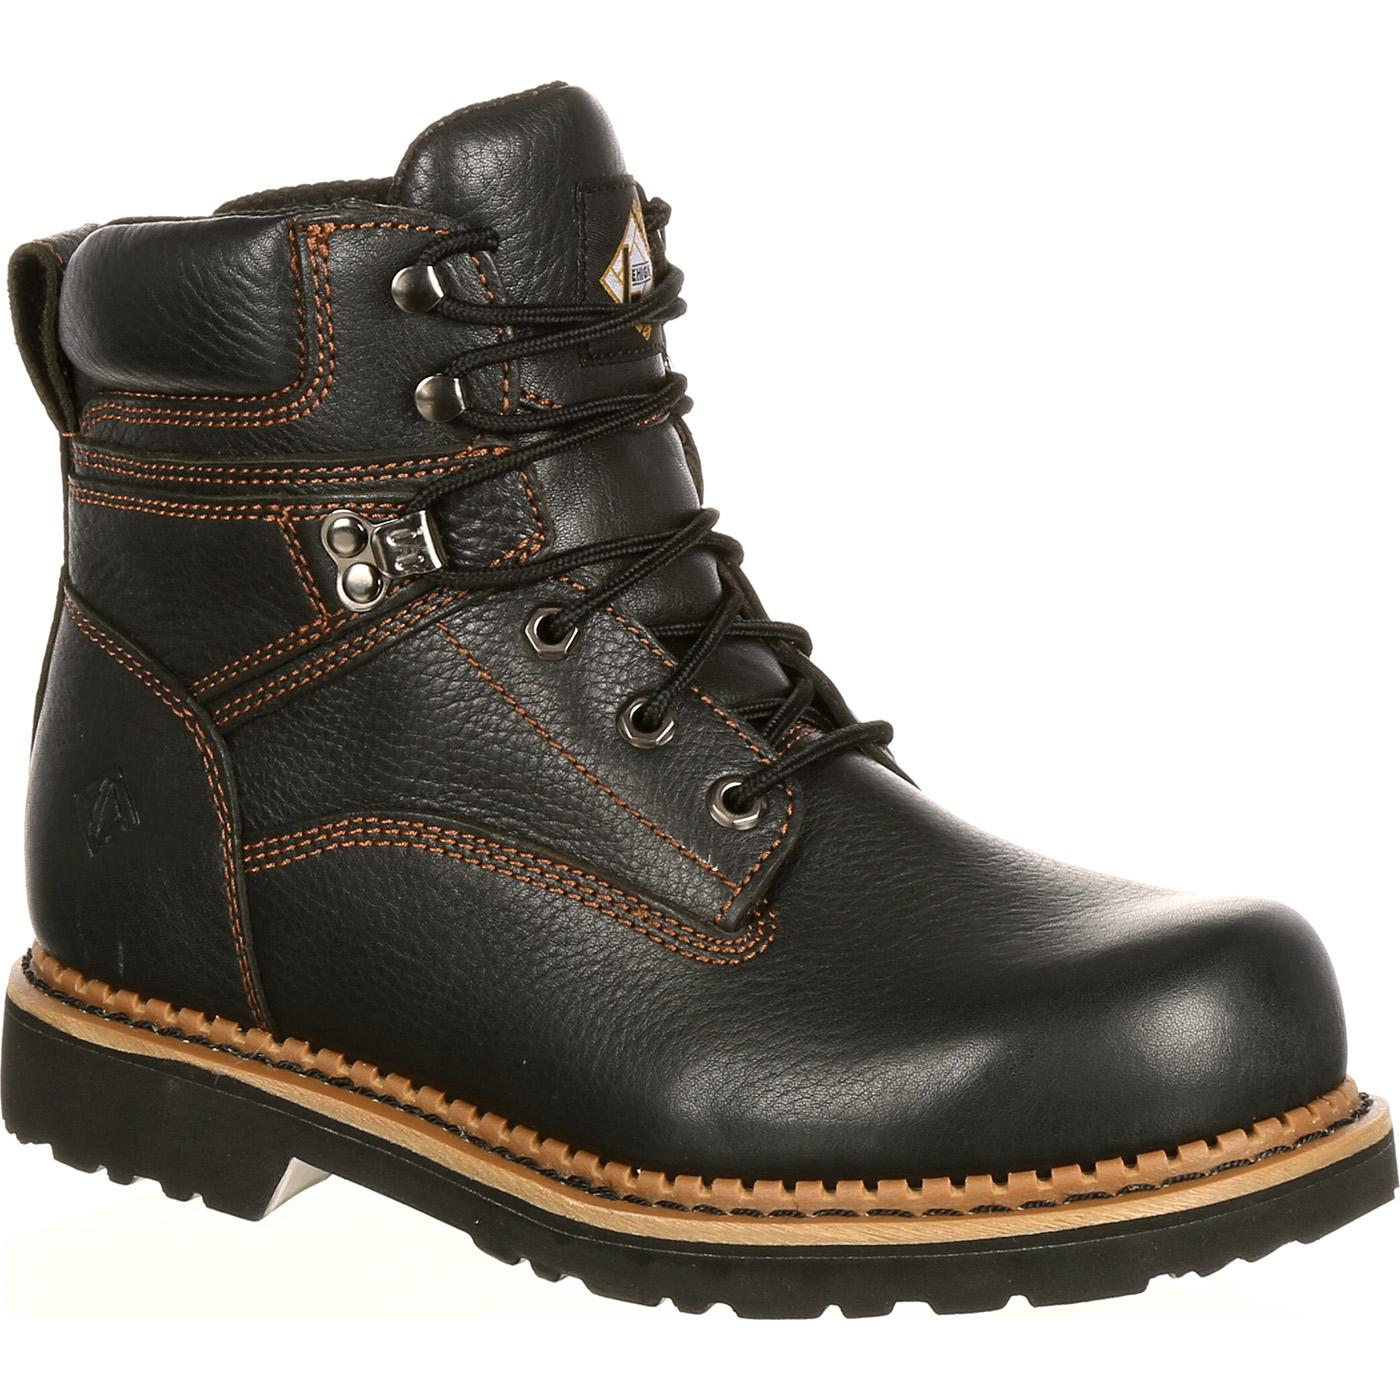 Lehigh Outfitters. 10, likes · talking about this. Lehigh Outfitters is a national retailer of occupational footwear. We carry a wide variety of.